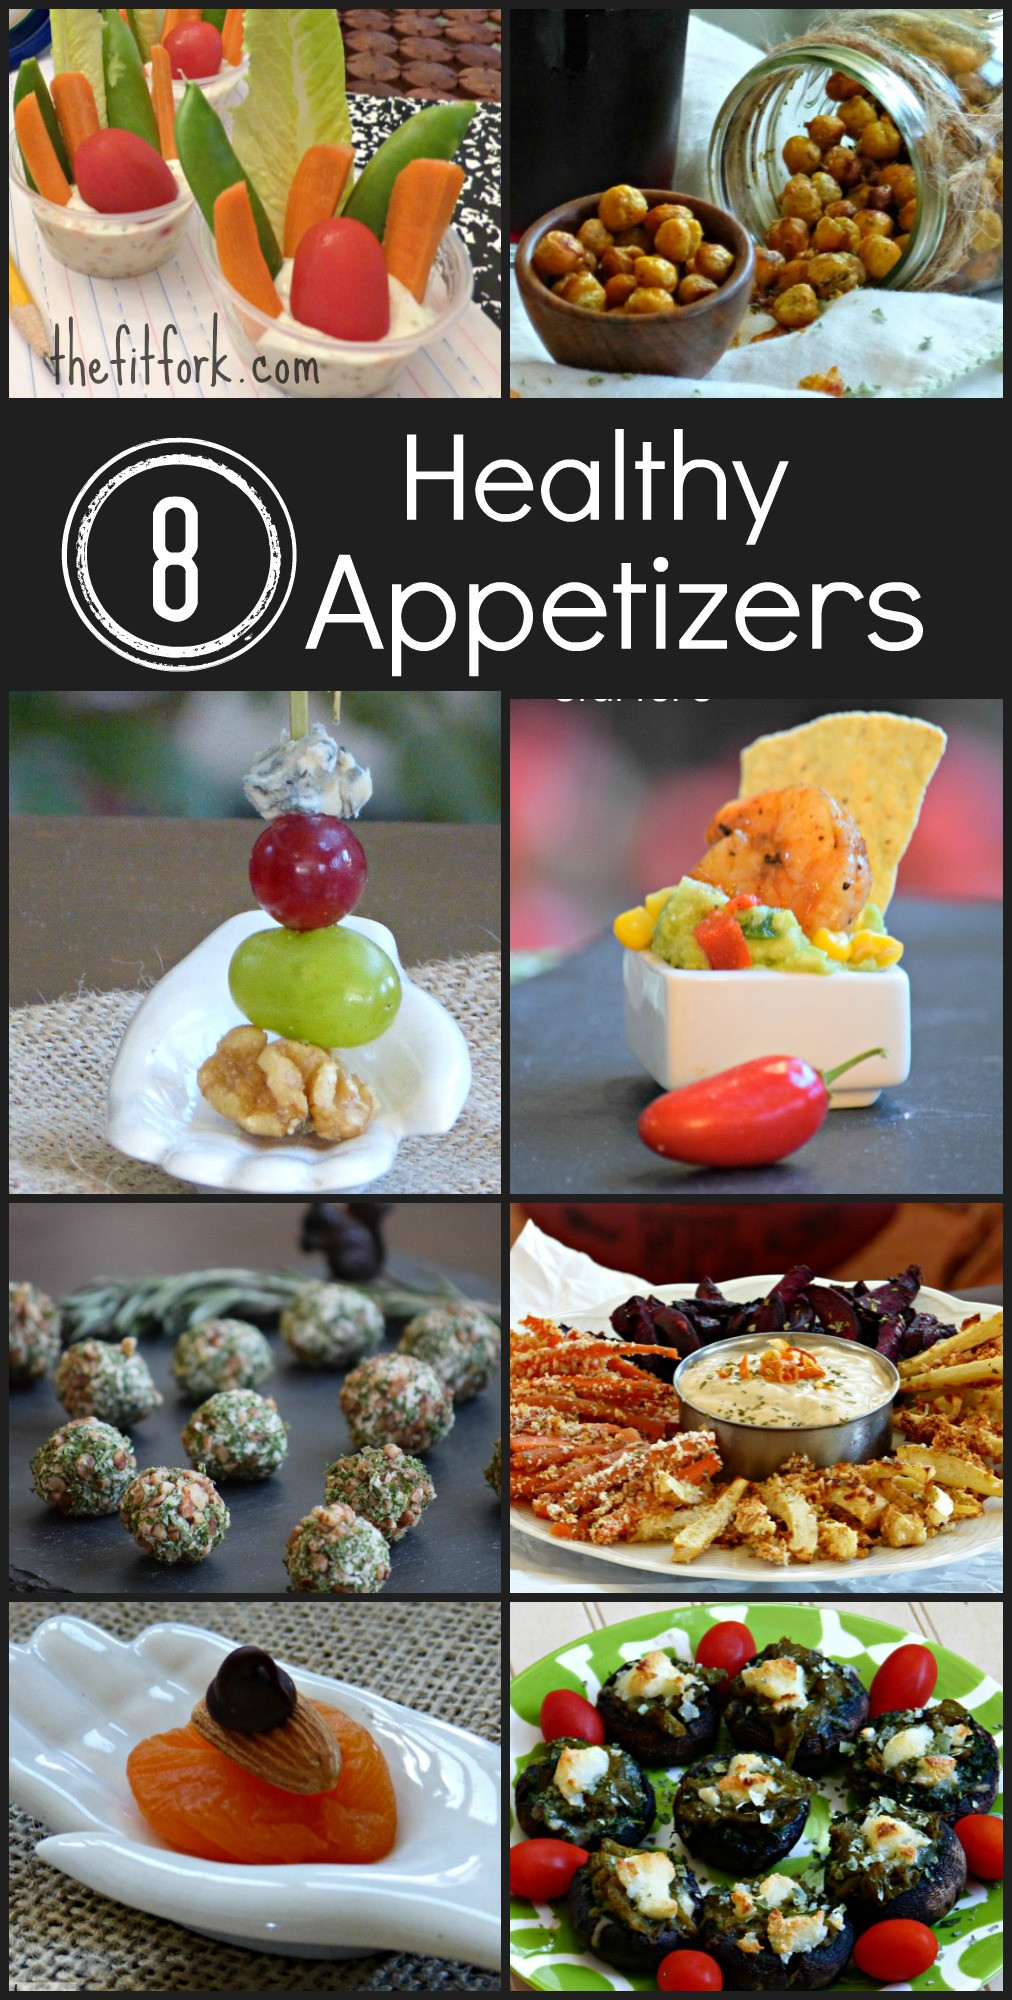 Healthy Party Appetizers  Lettuce Party 8 Healthy Appetizers for New Year's Eve